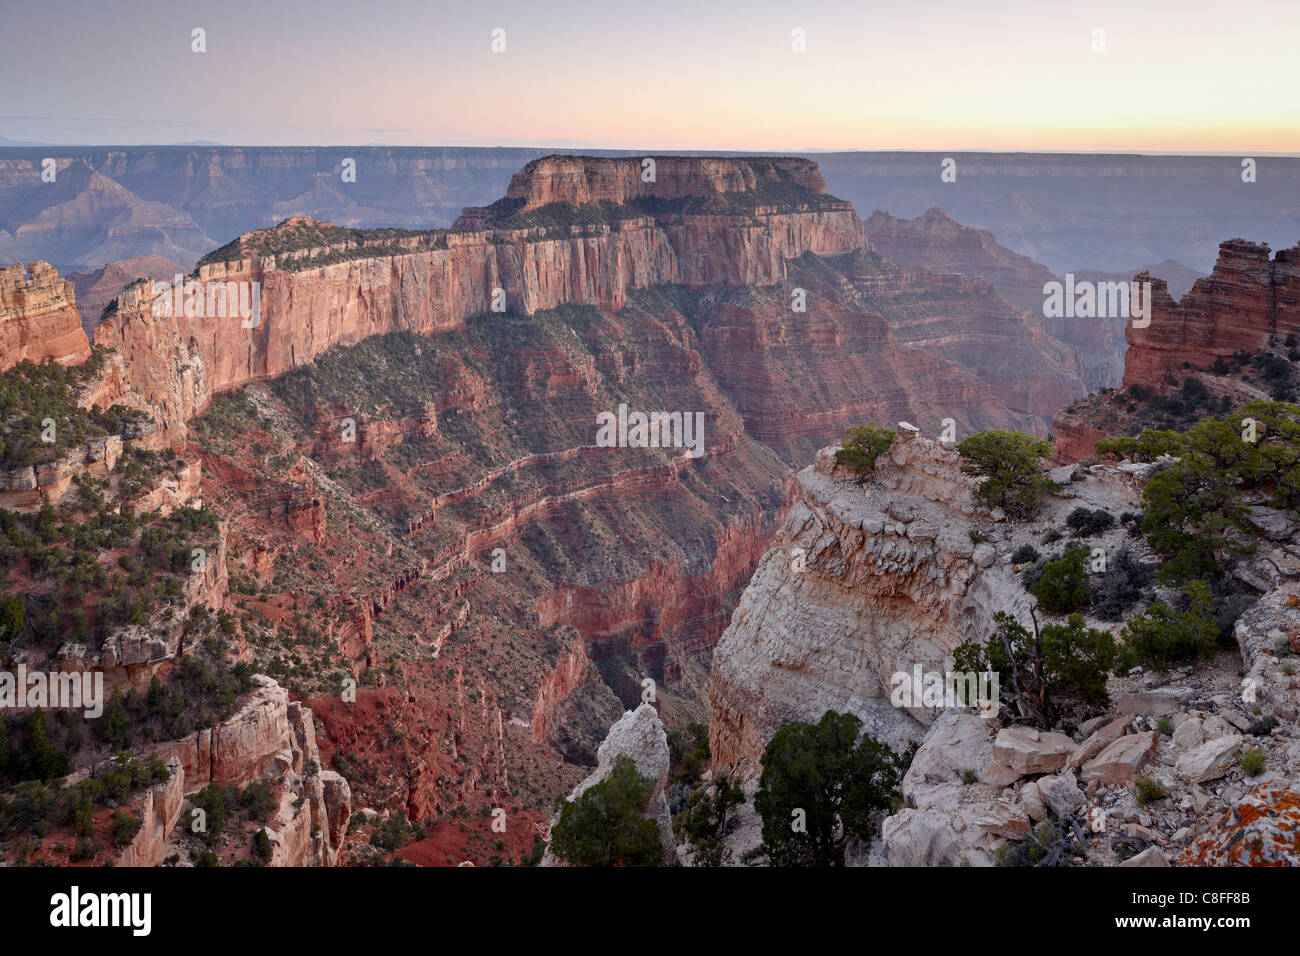 View from Cape Royal at dusk, North Rim, Grand Canyon National Park, UNESCO World Heritage Site, Arizona, USA Stock Photo